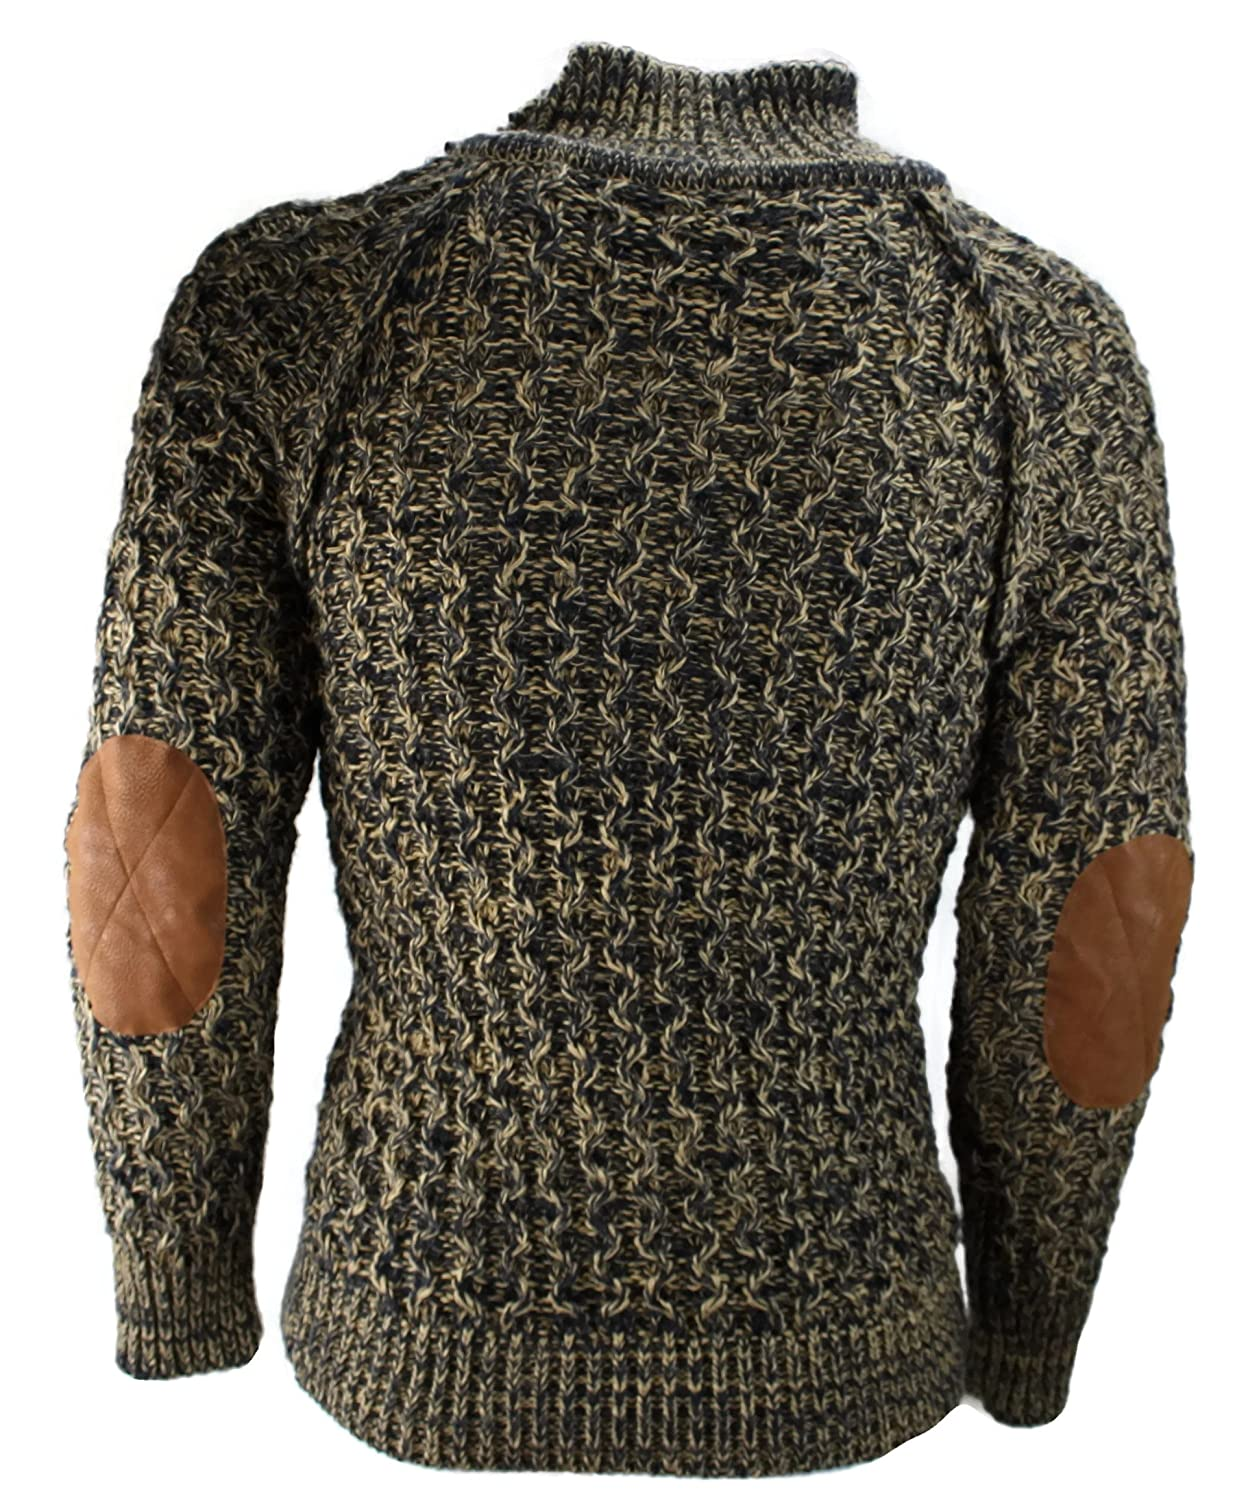 # 2010?Men's Brown Designer Jumper Knitted Sweater Chunky Knit S M L XL XXL